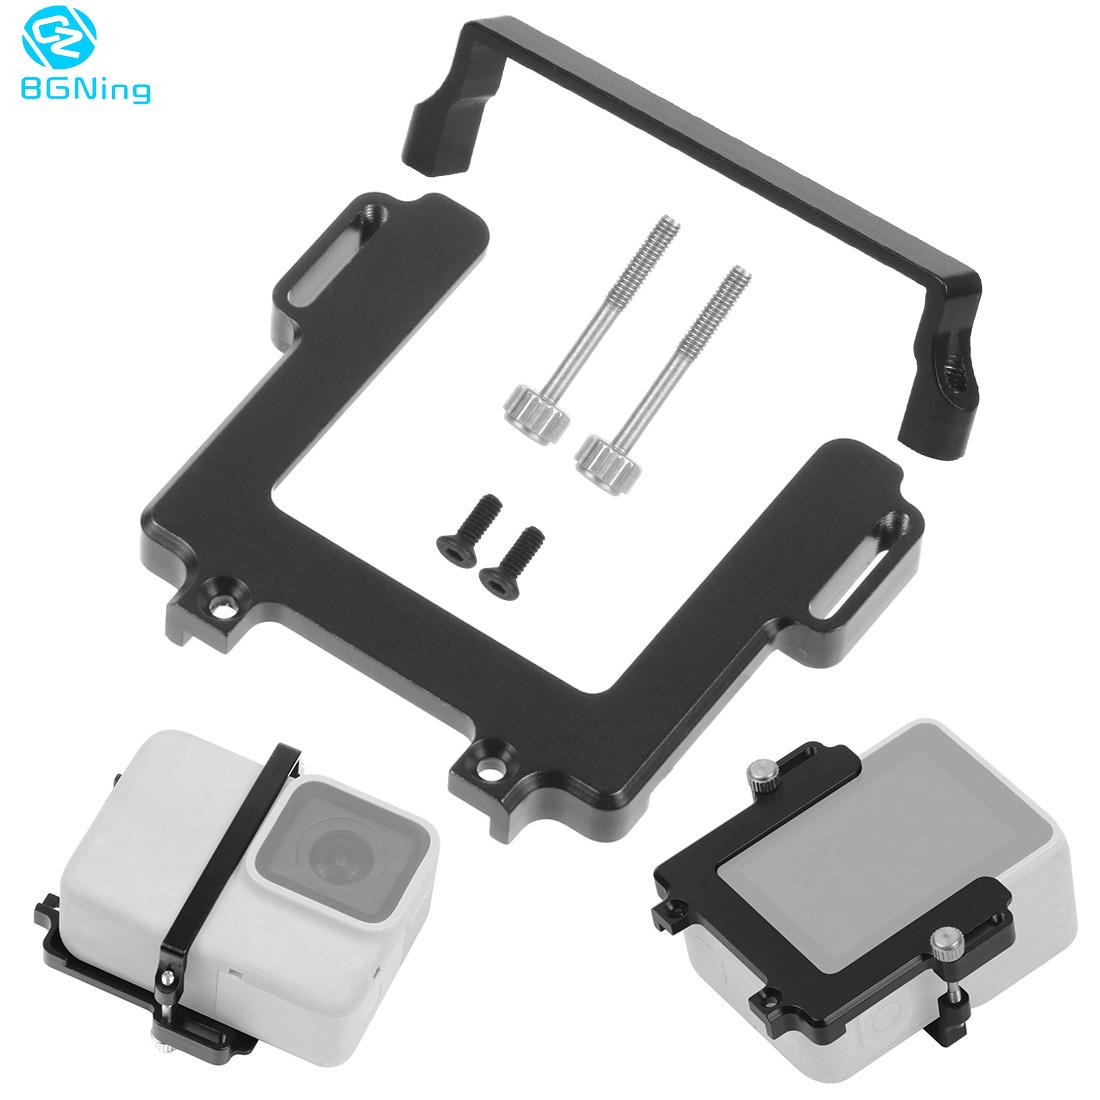 Handheld Stabilizer Switch Plate Adapter For Gopro Hero 8 7 For DJI Osmo Action For FY G6 WG2X Gimbal Ricca Camera Fixture Mount